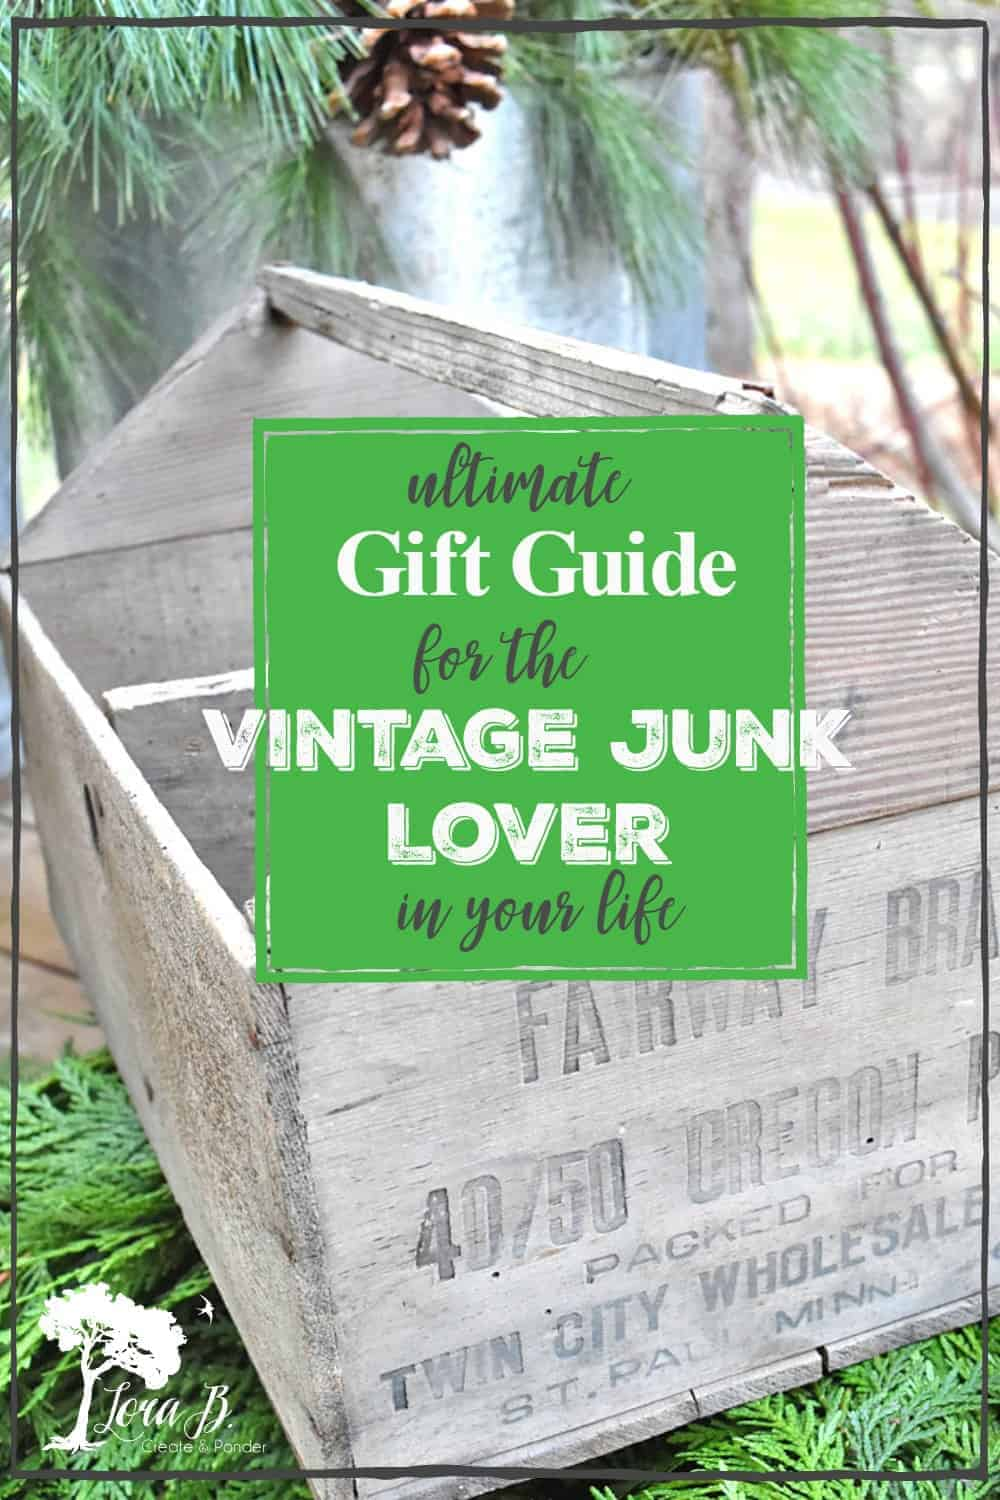 Gift Guide for the Vintage Junk Lover